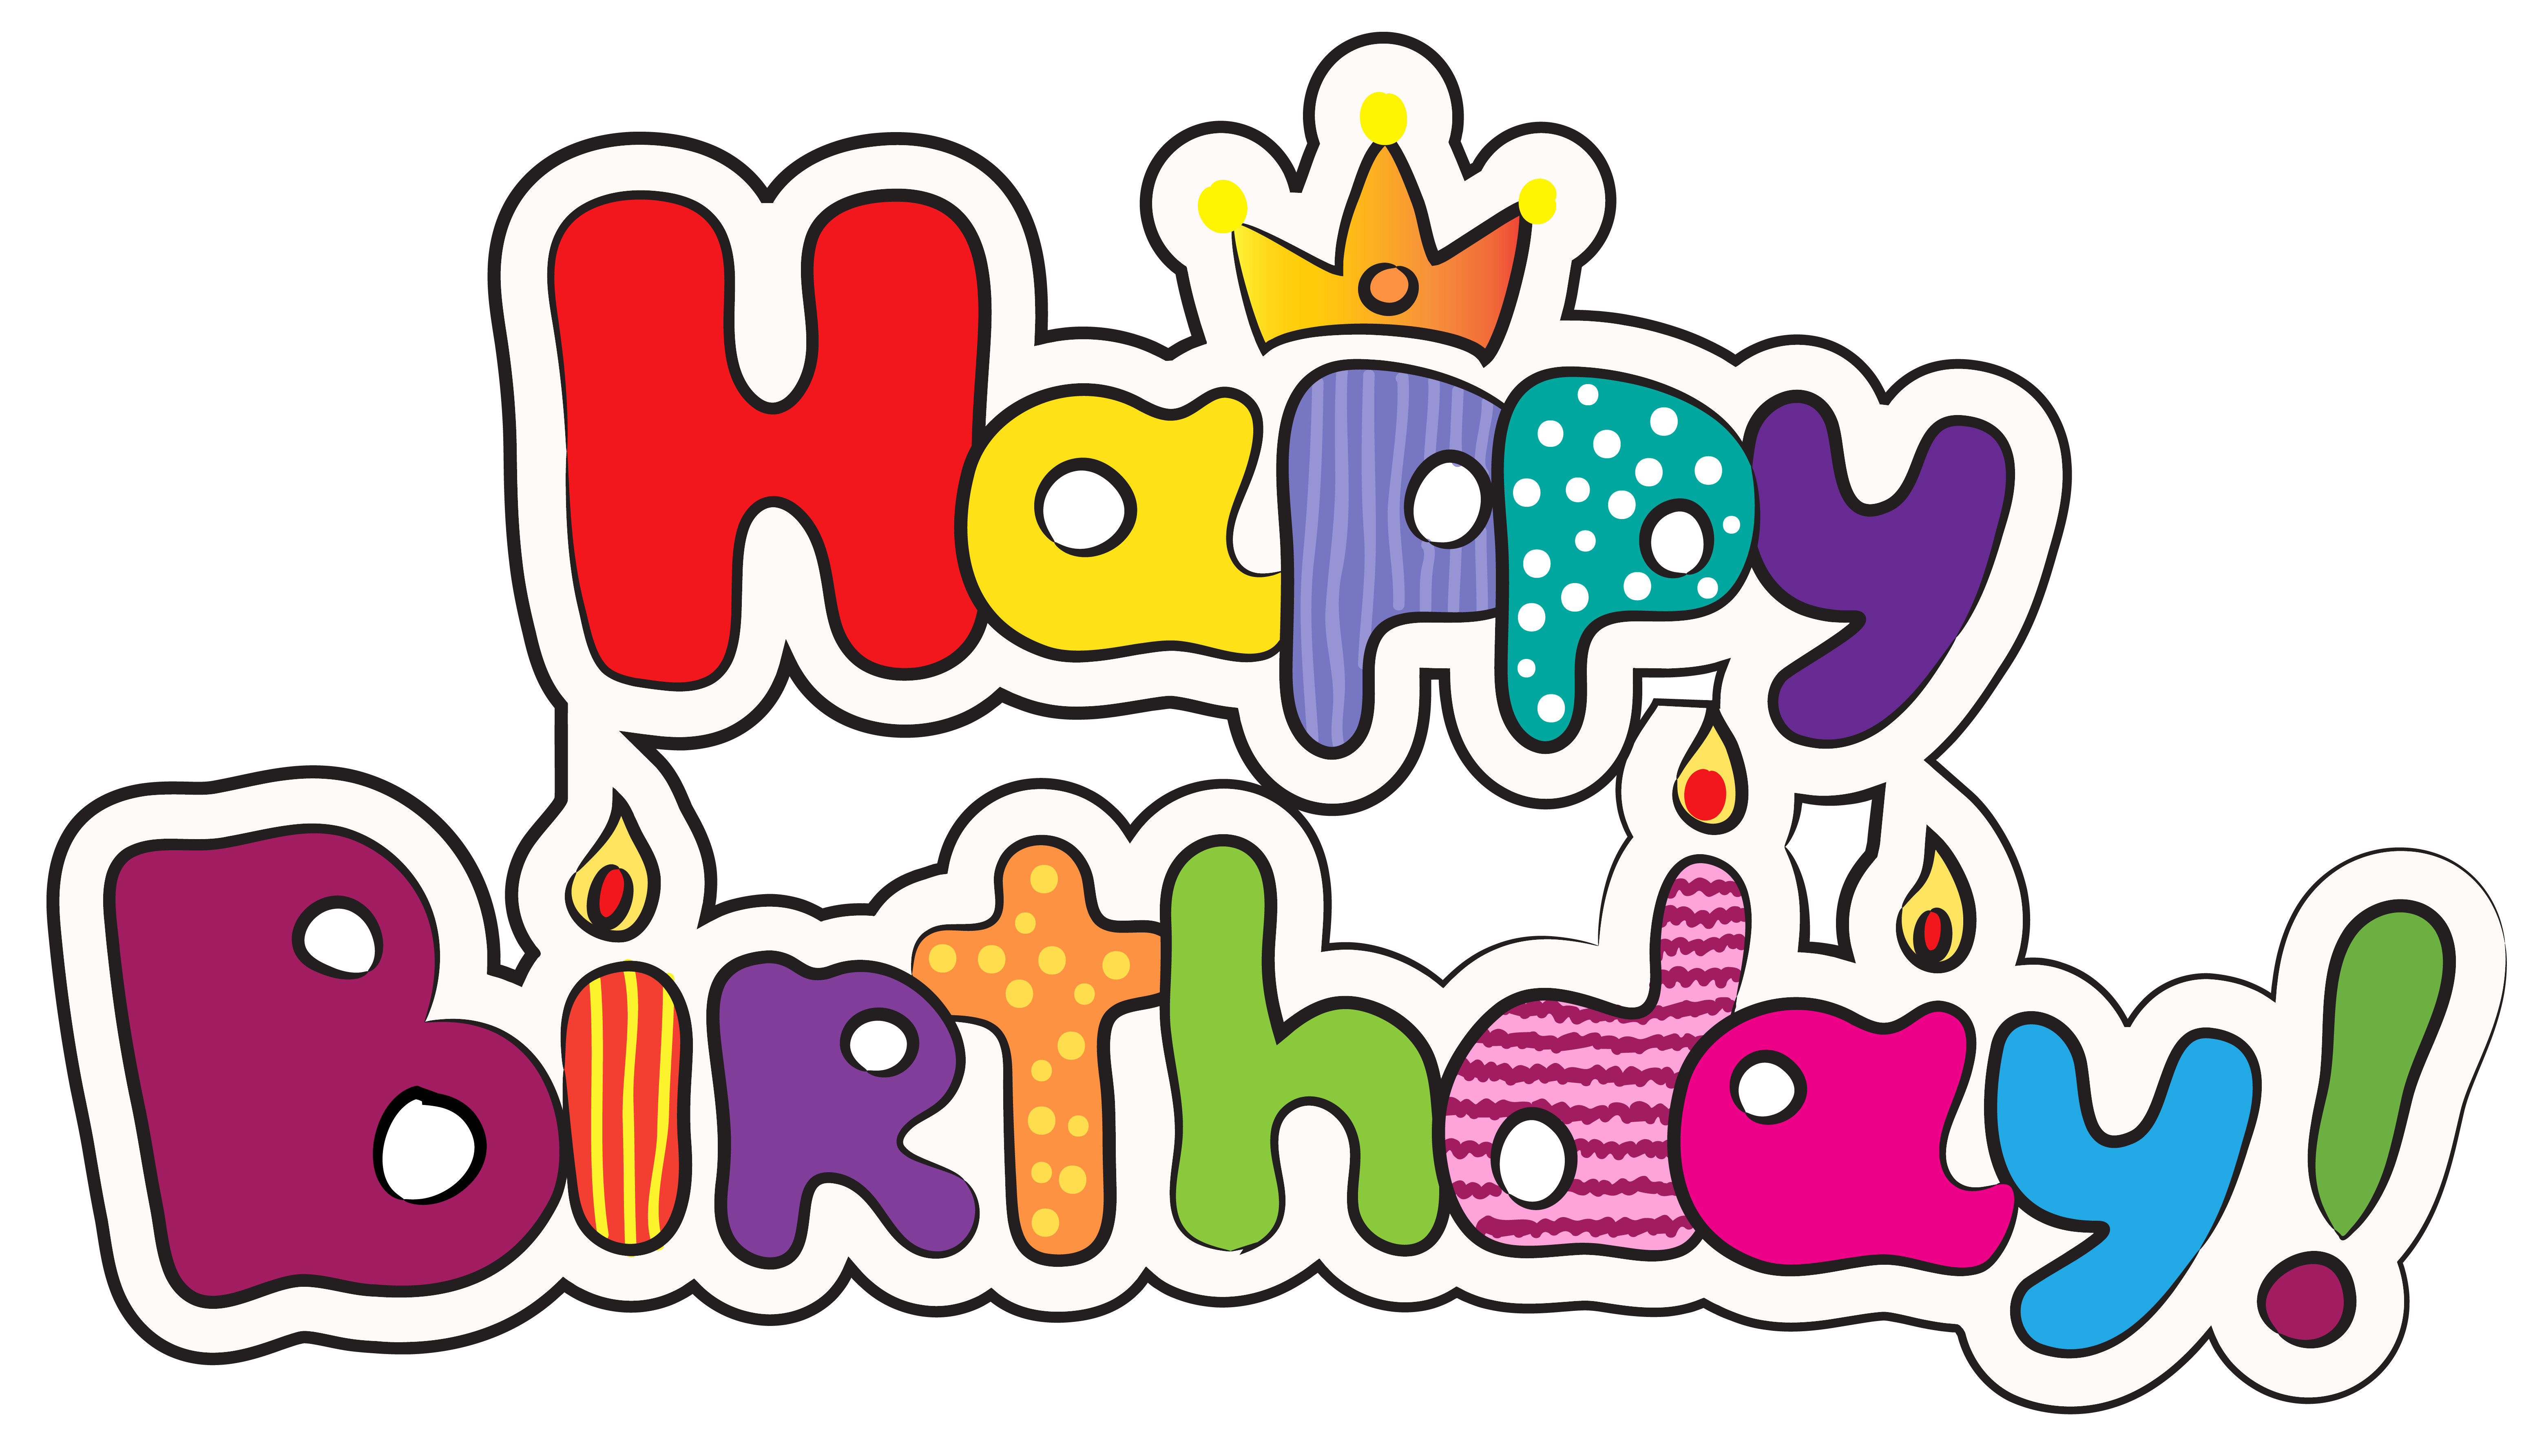 Clipart Of Happy Birthday & Of Happy Birthday Clip Art Images.